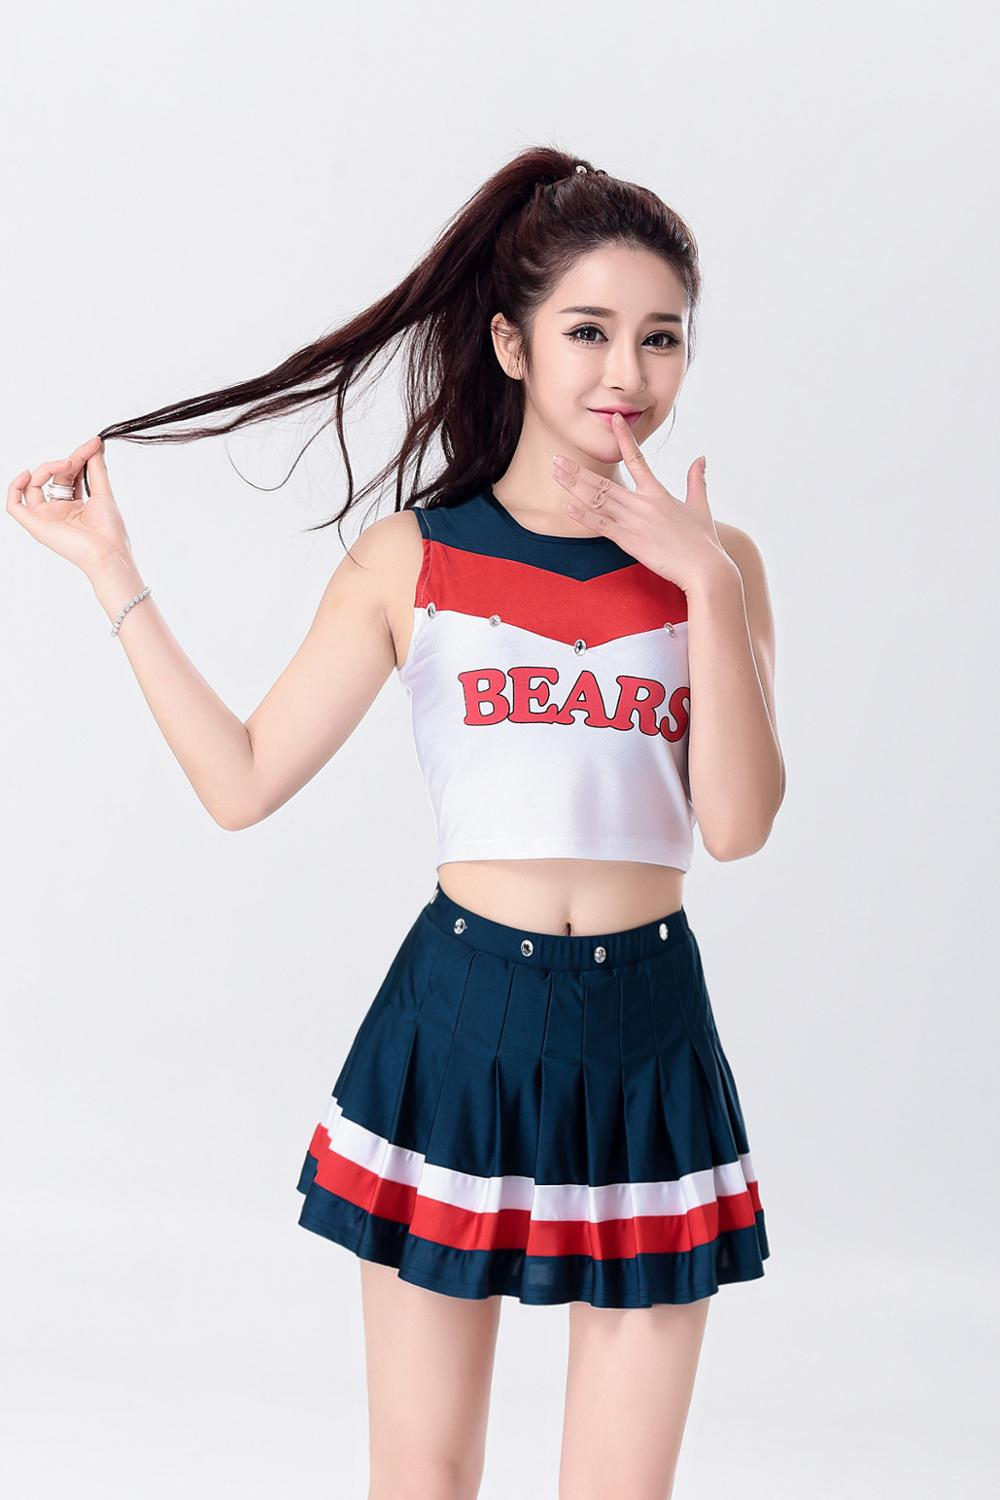 Korean High School Cheerleader Costume Cheer Girls Uniform Sports Outfit Girl 10 Korea Japan Style Sport Cheerleading Varsity Top With Skirt